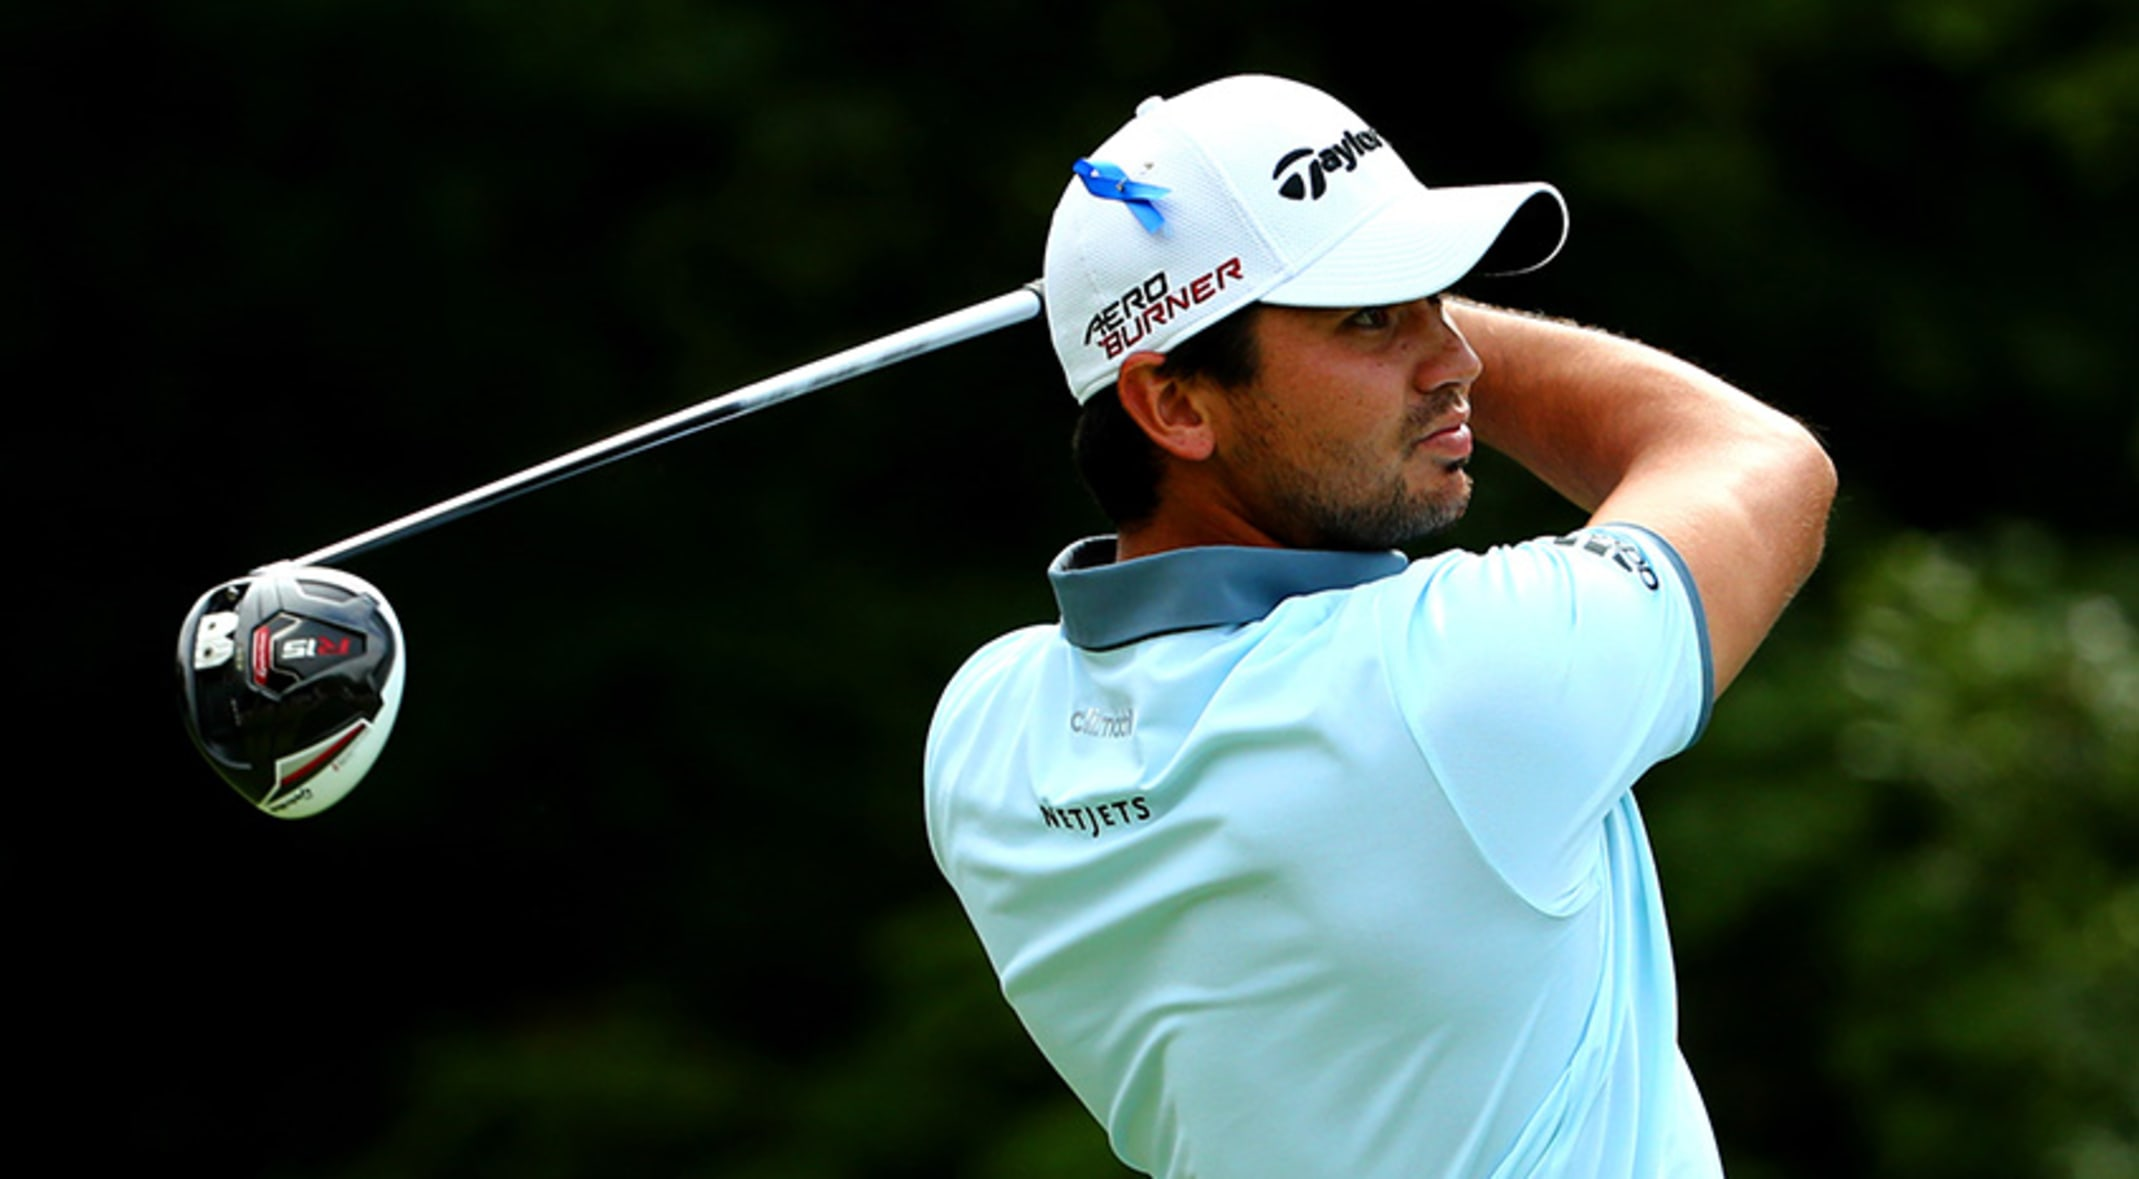 cc0265f66fb21 If Jason Day wins this week then there apos s a good chance he becomes No.